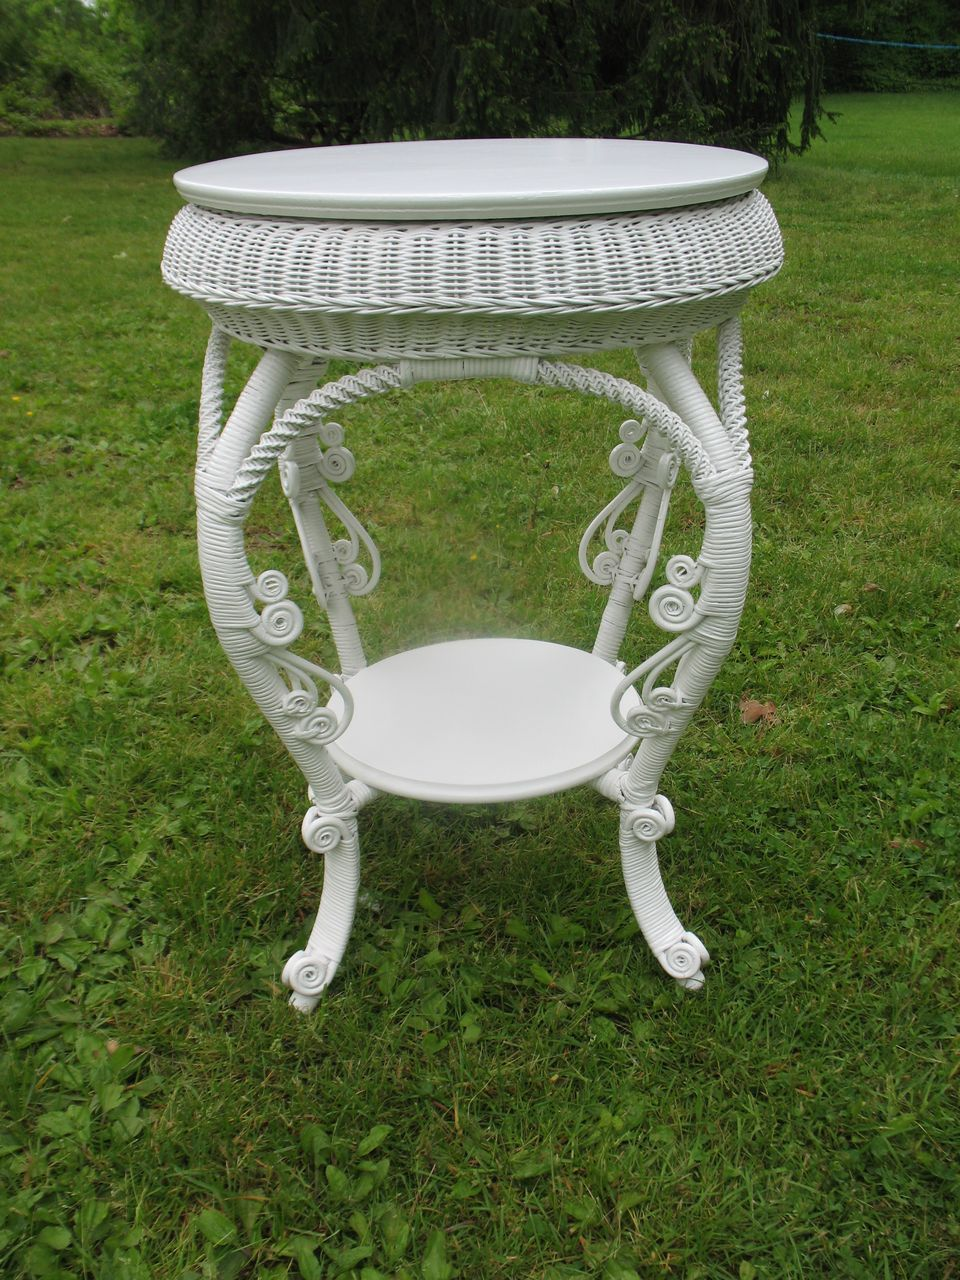 Antique Round Victorian Wicker Table Circa 1890 S From